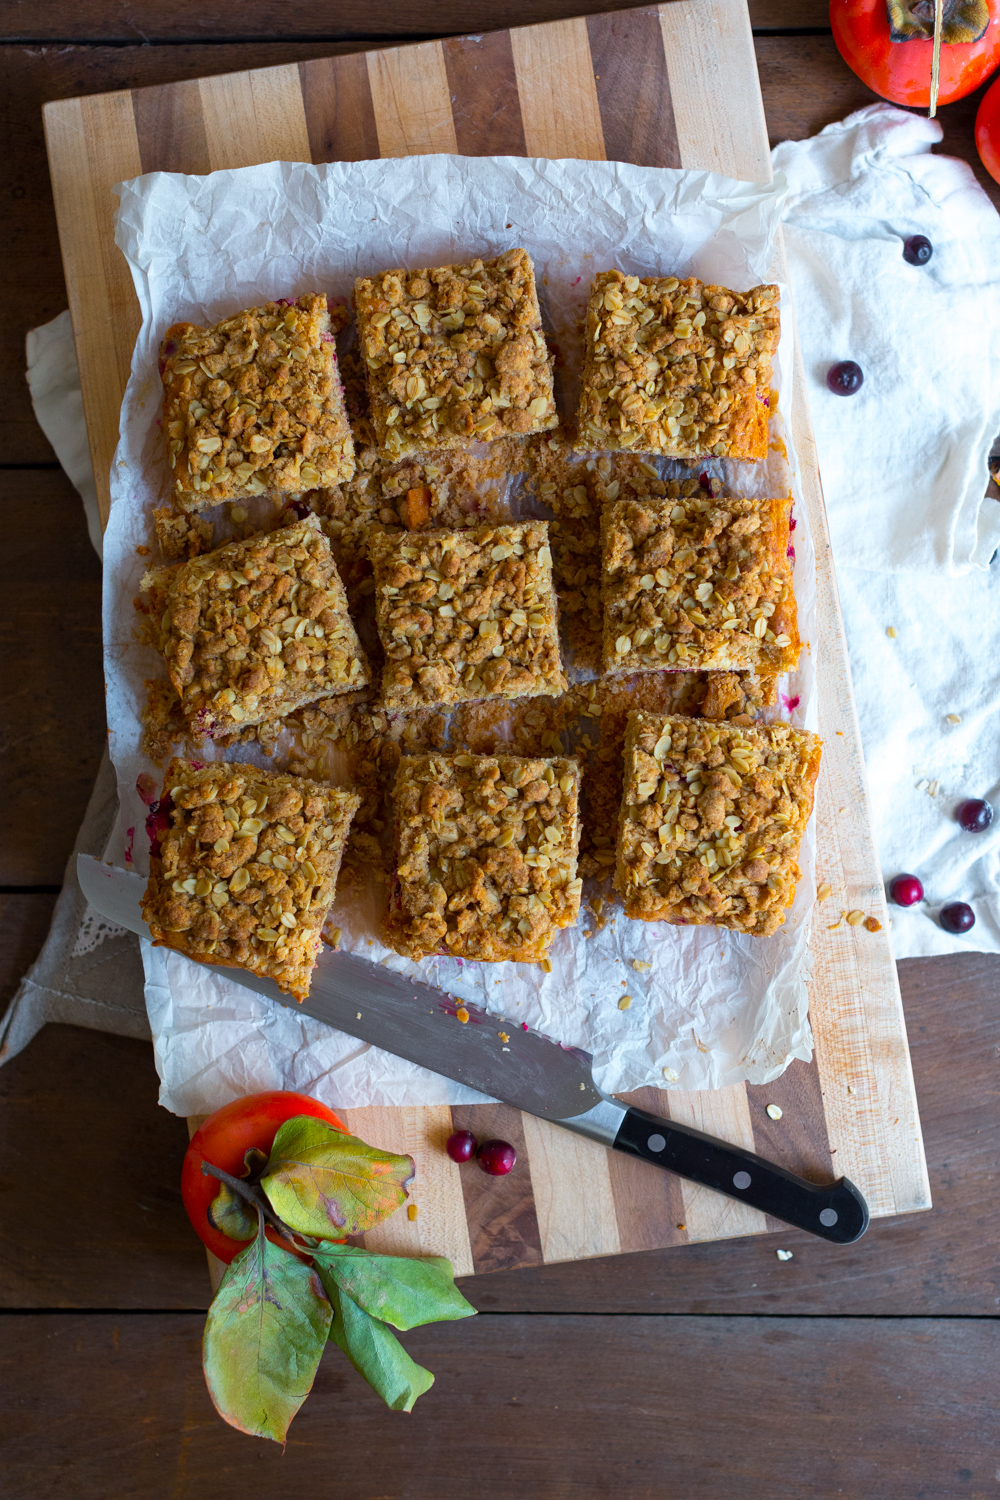 Persimmon Cranberry Crumb Cake sliced